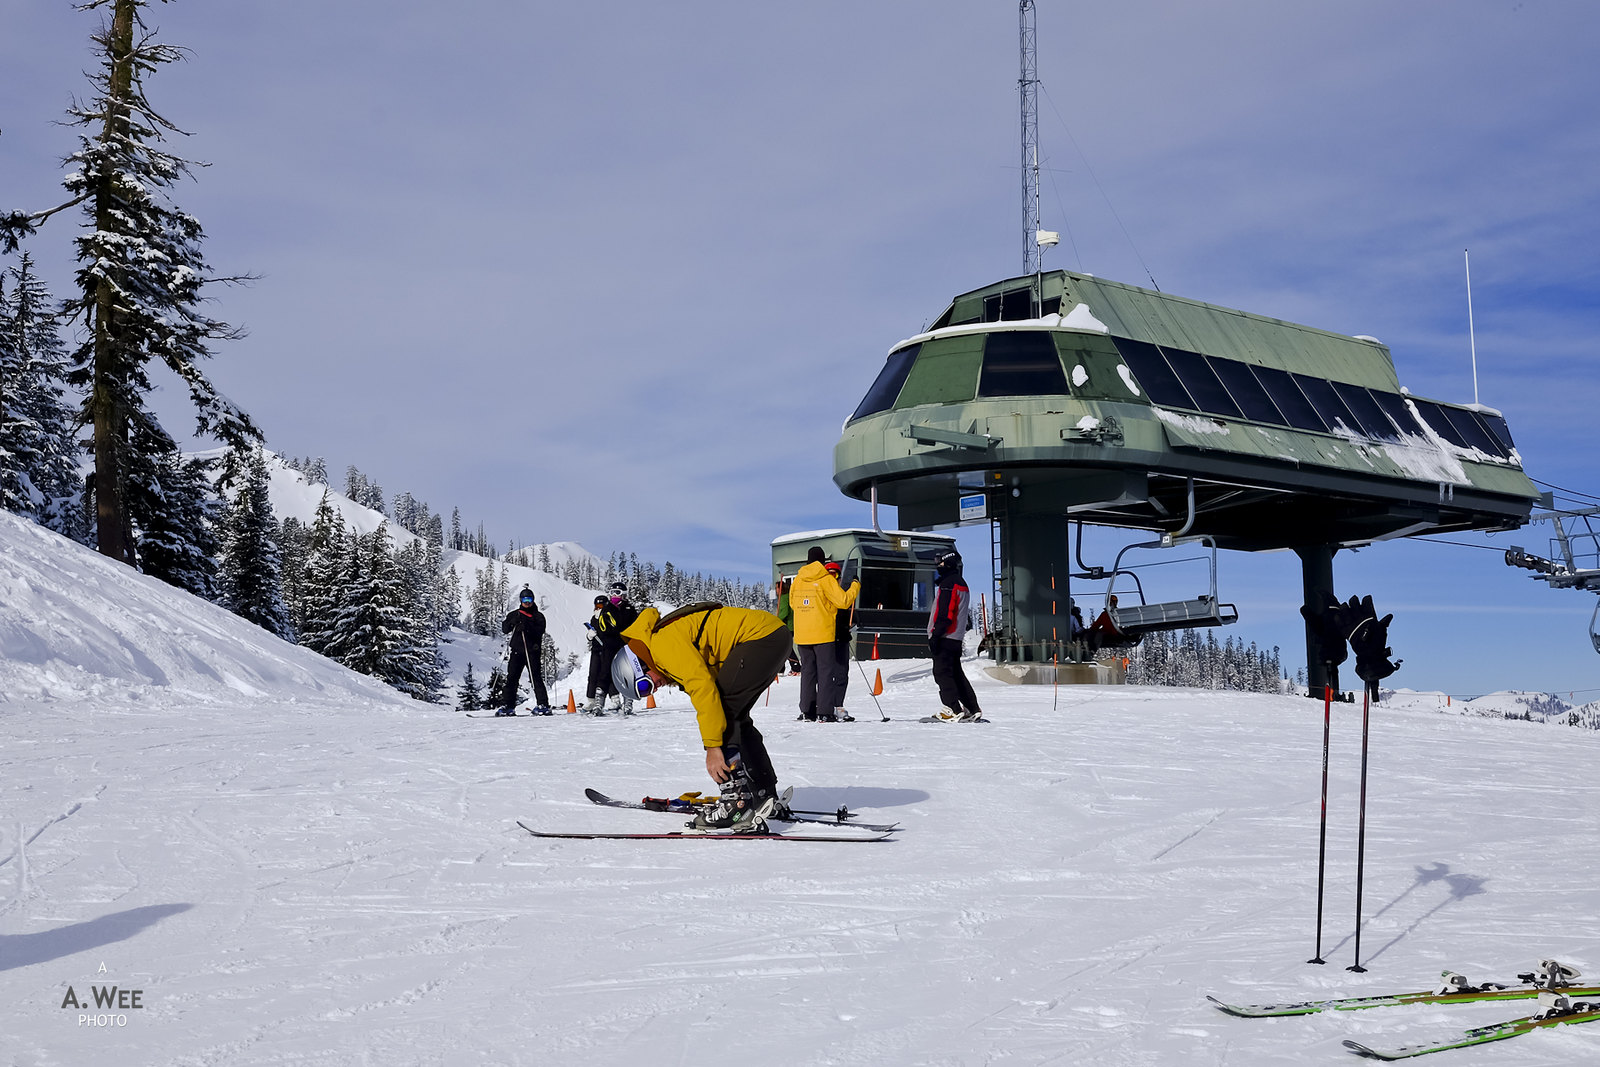 Roundhouse Express chairlift